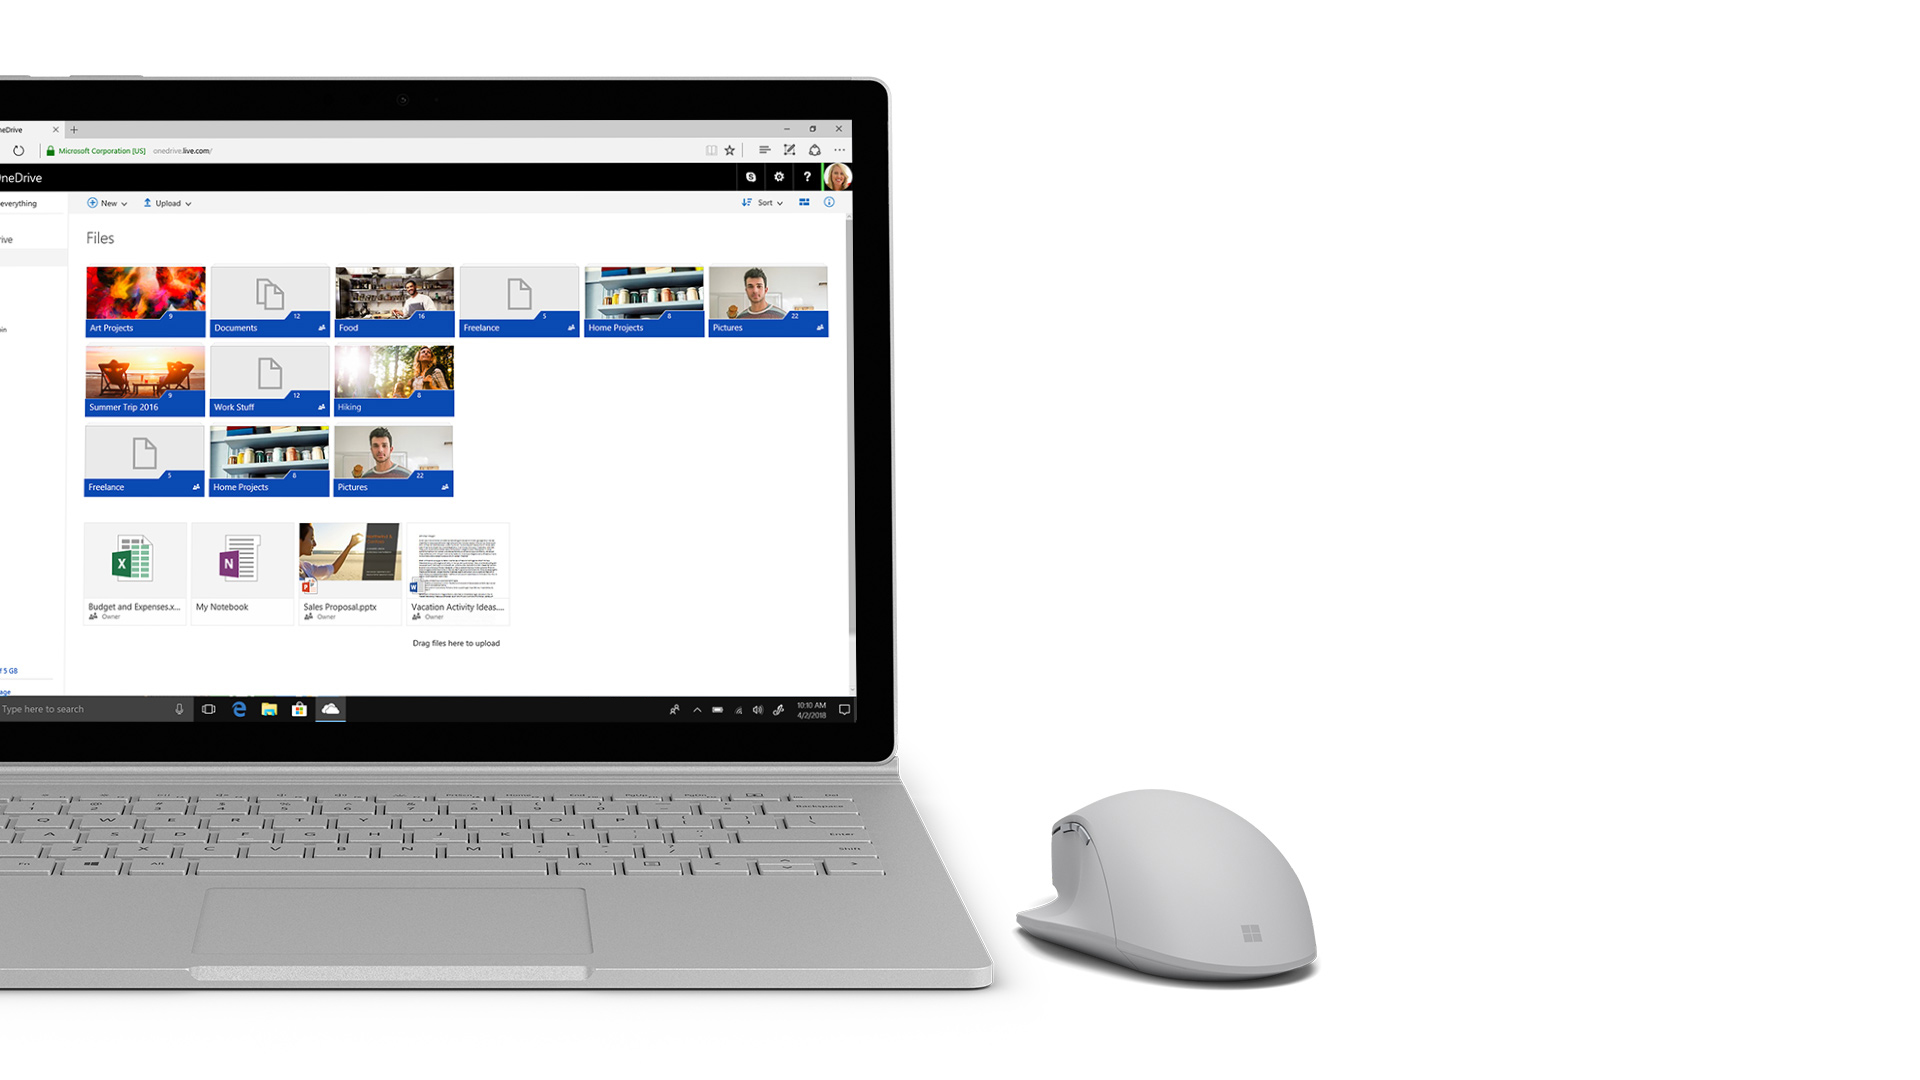 Surface 显示 OneDrive 屏幕截图。